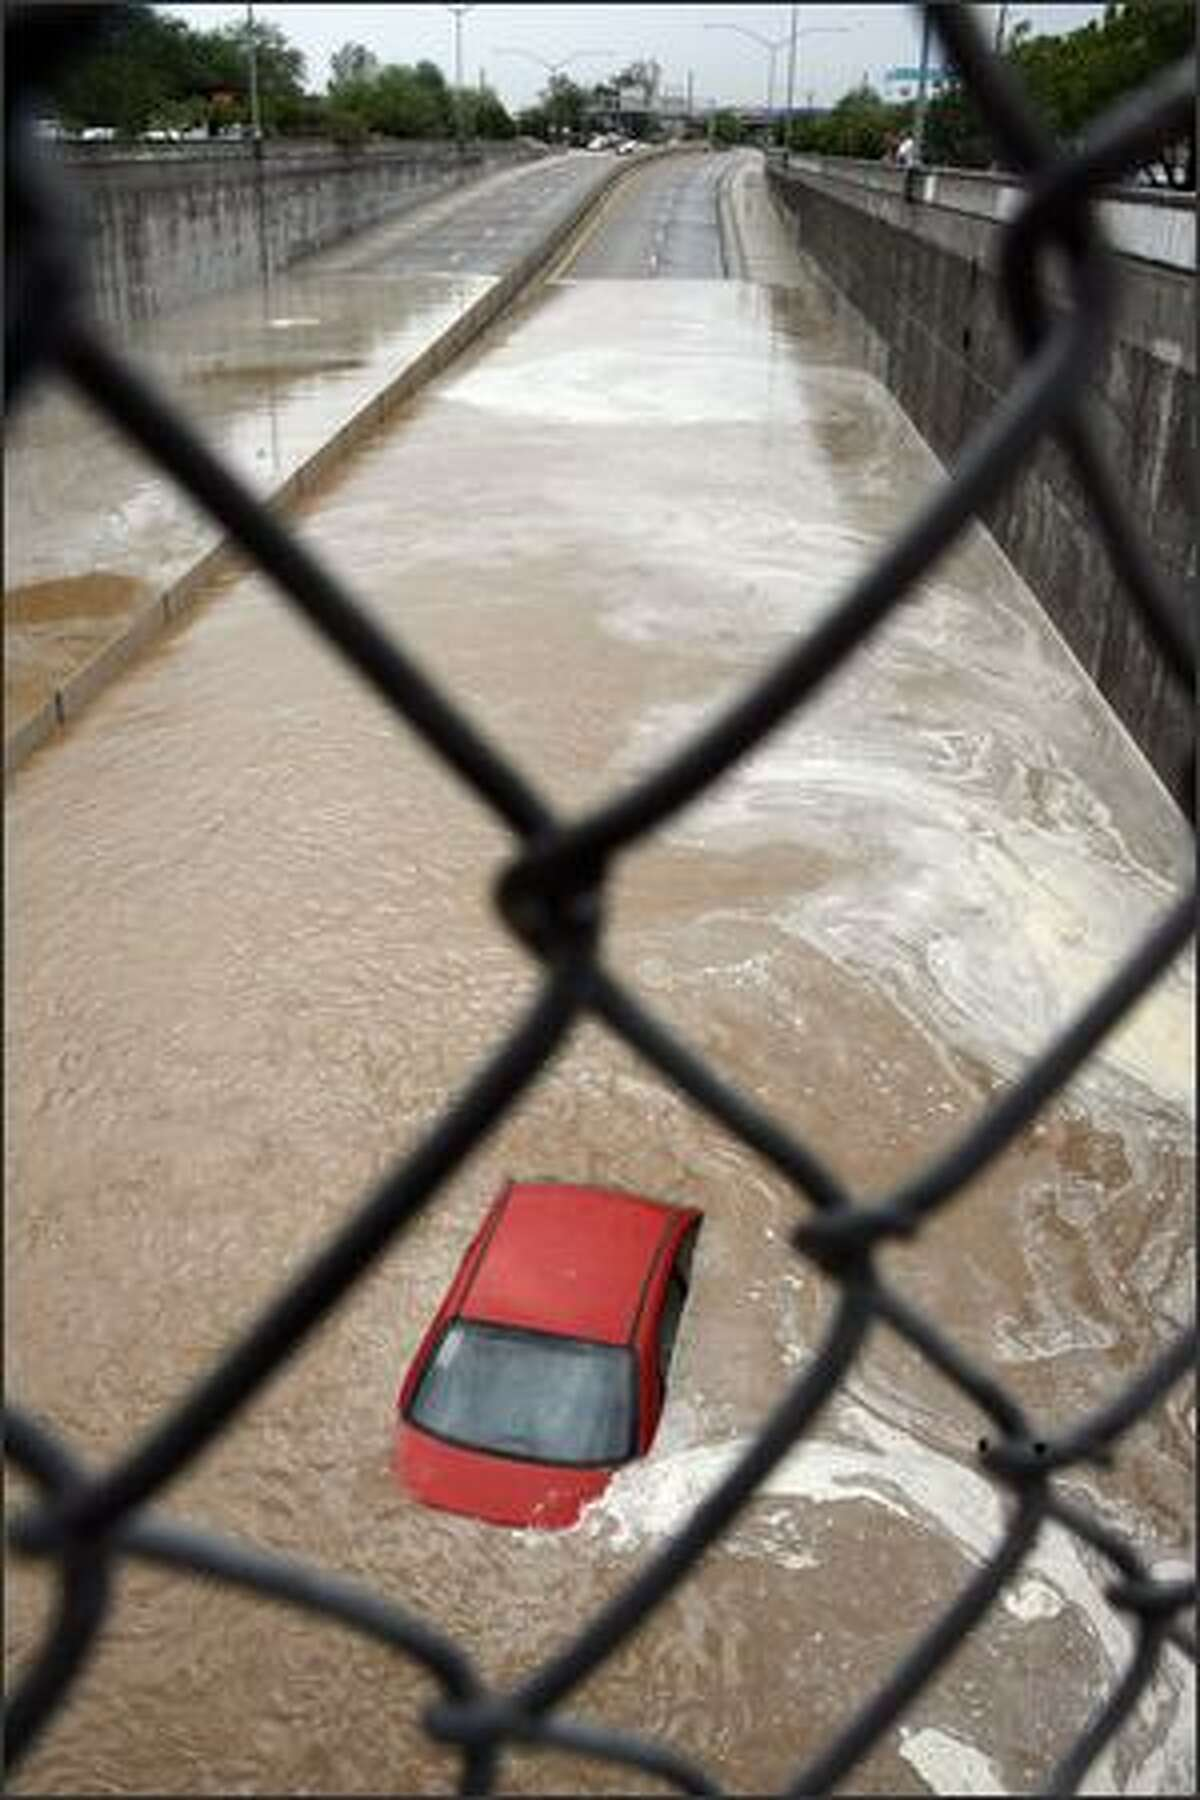 A car is stranded in the west-bound lane of Aviation Parkway is shown Tuesday, July 31, 2007, in Tucson, Ariz. AP Photo/Daily Star, Jeffry Scott